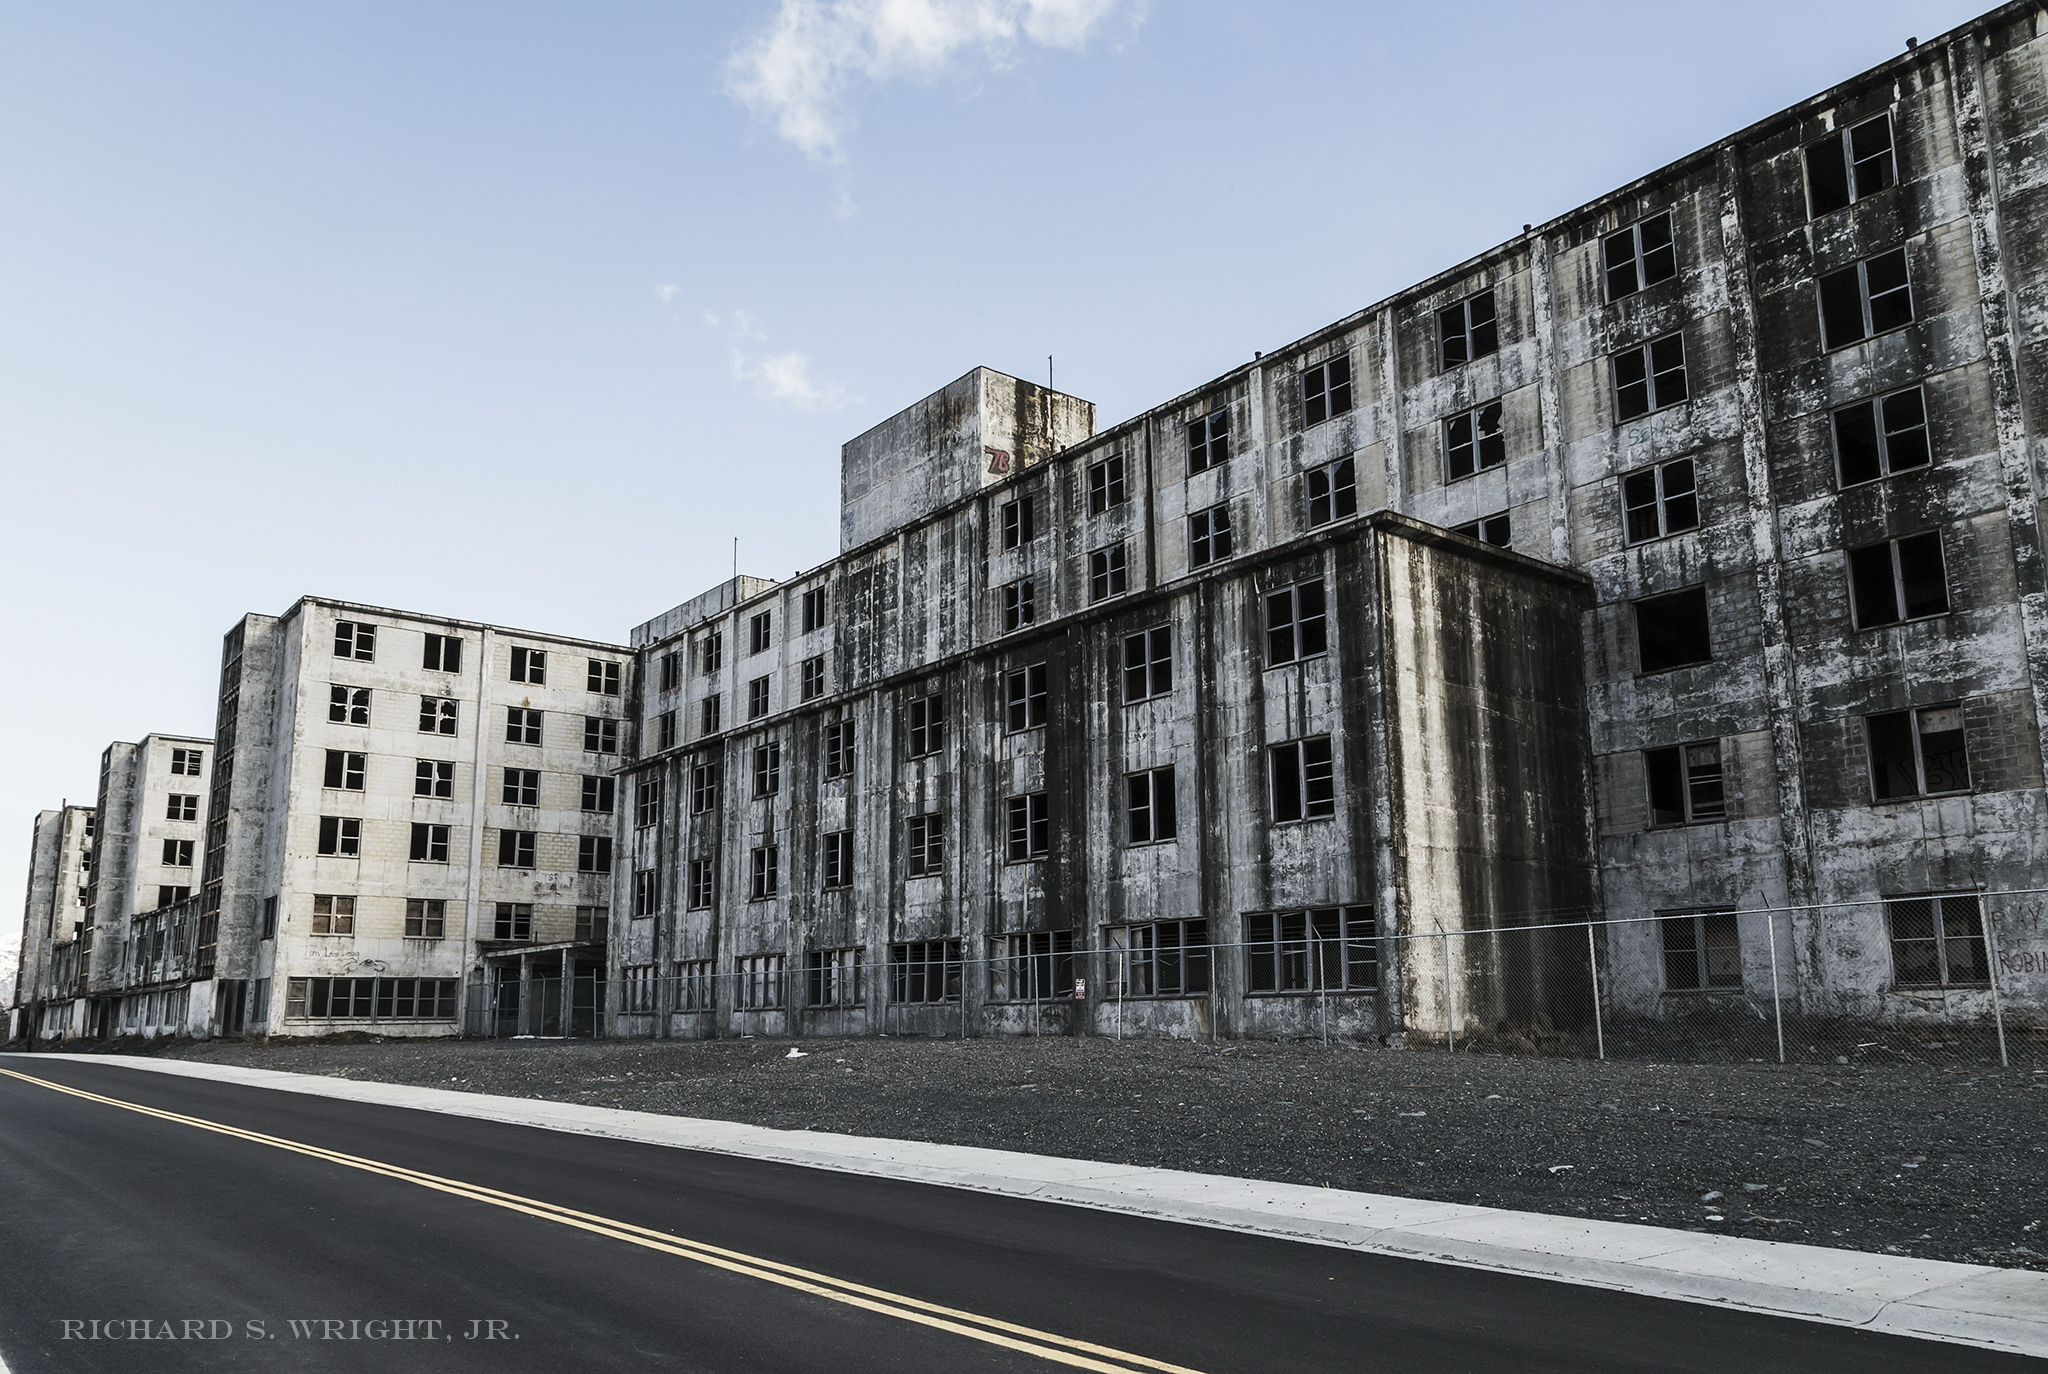 Abandoned Apartments in Whittier, Alaska. Photograph by Richard S. Wright, Jr. 2015